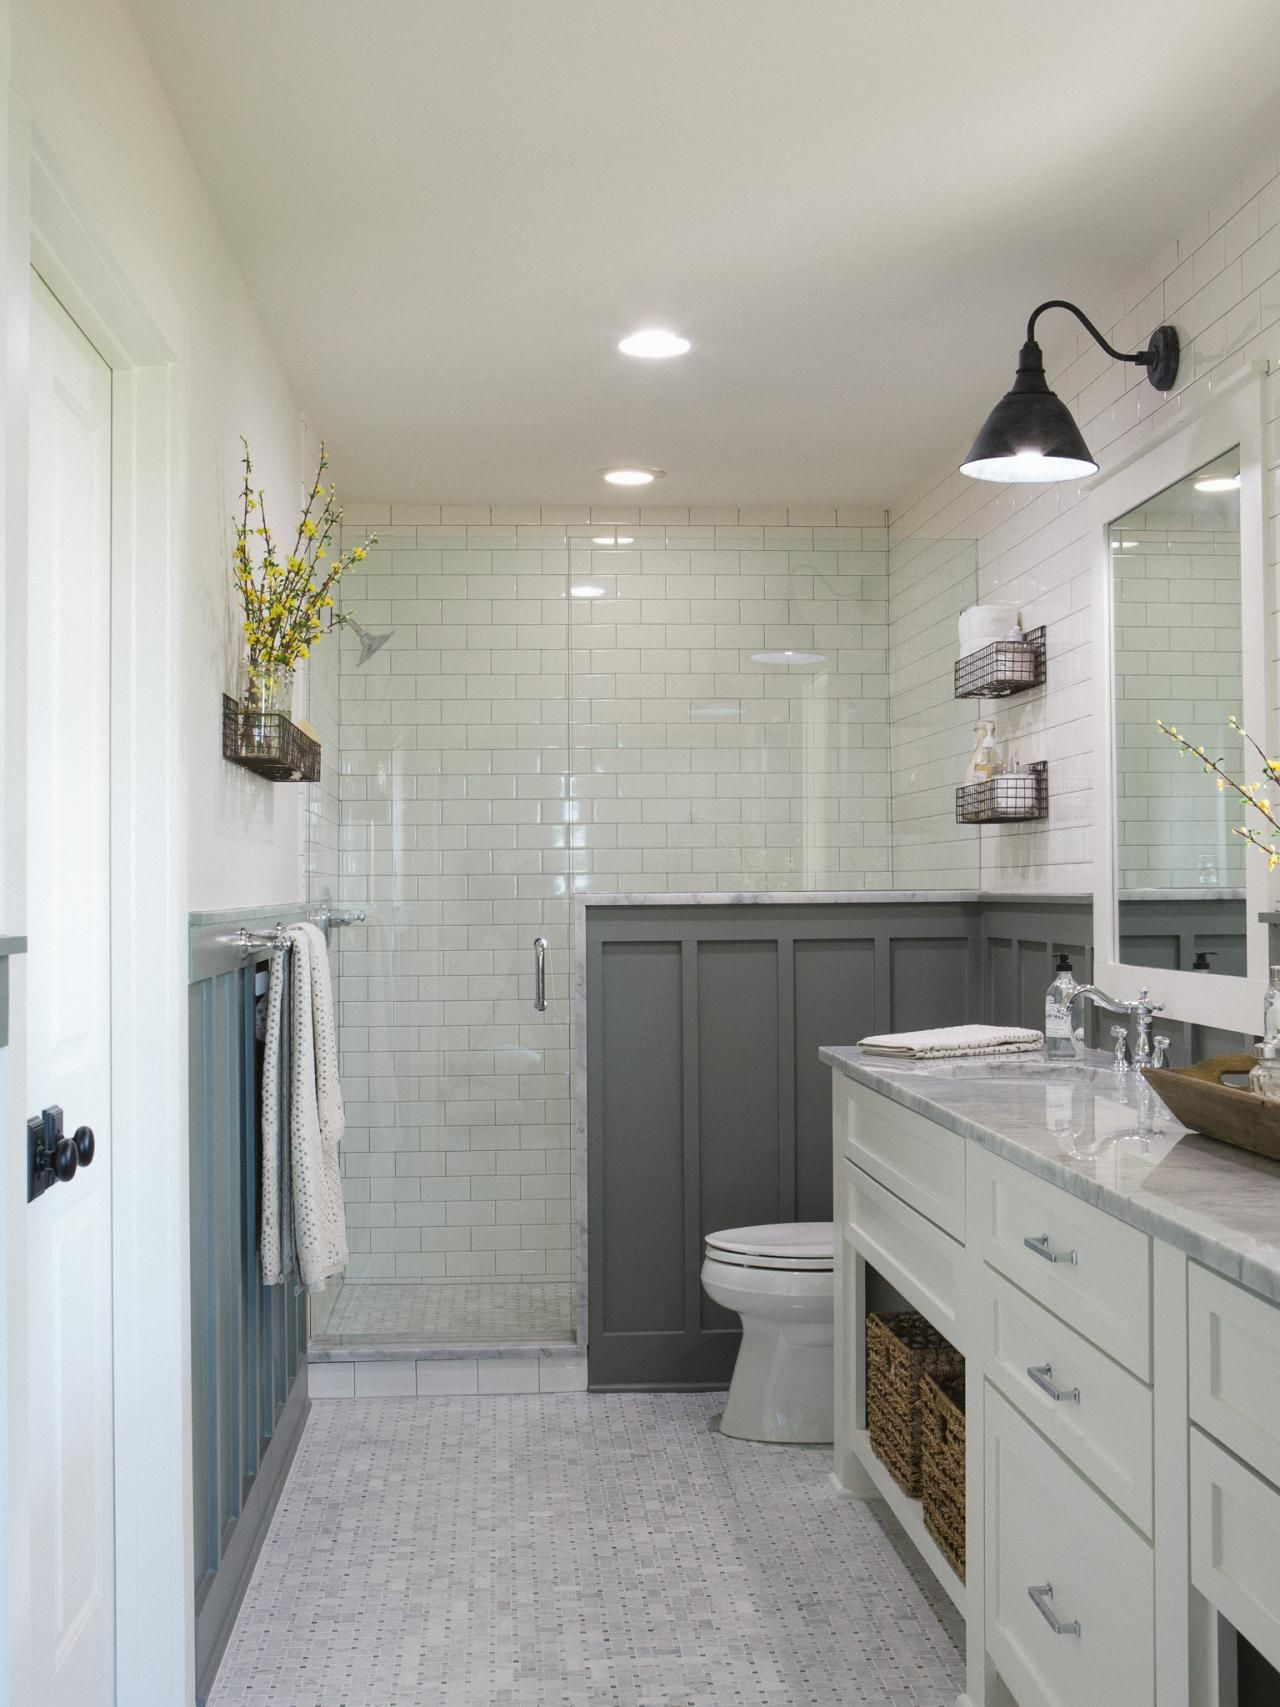 Find The Best Of Fixer Upper From Hgtv Bathroom Remodel Master